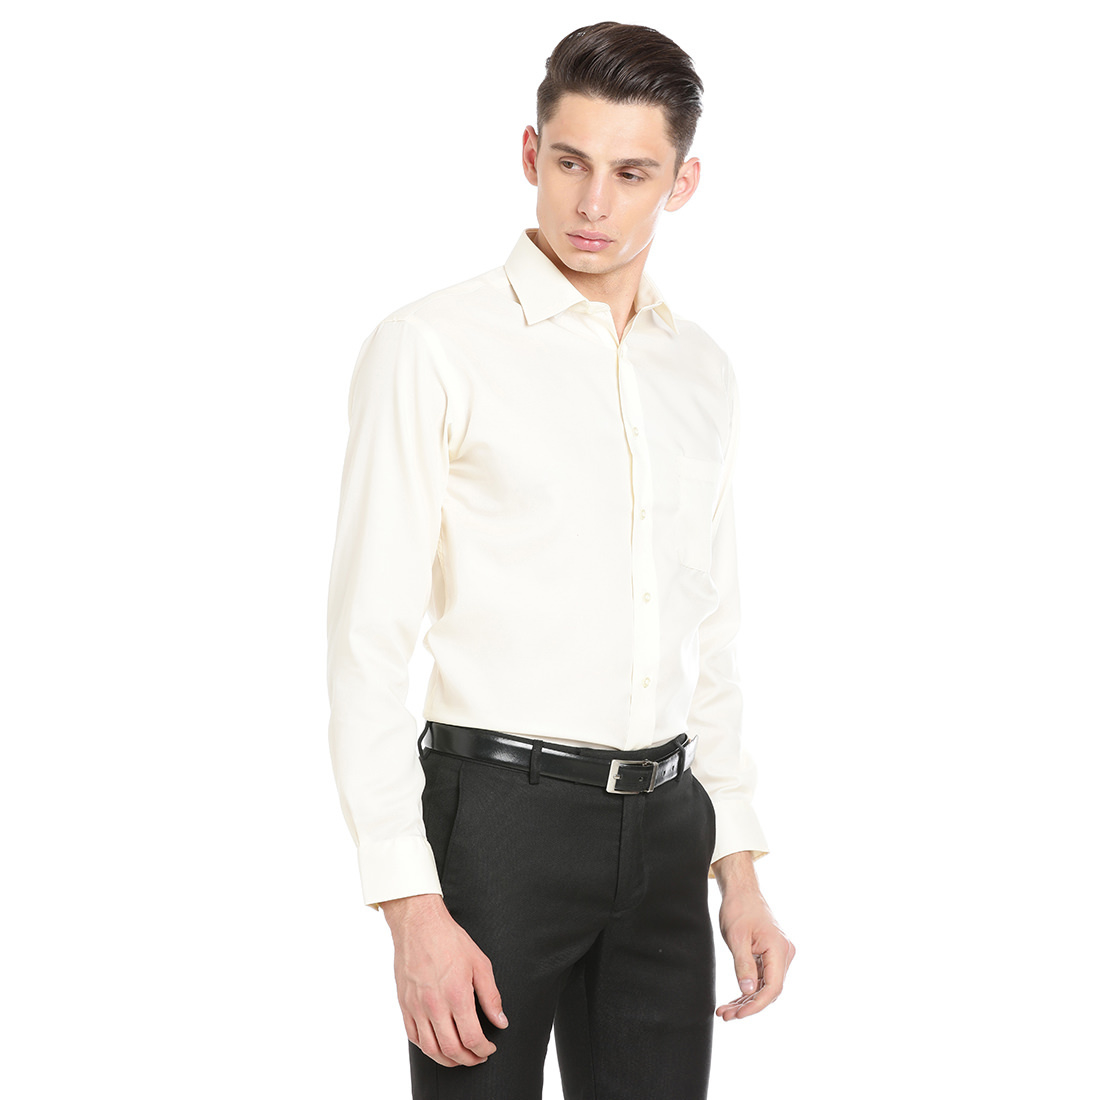 Paradigm Cream Color Formal Pure Cotton Non-Iron Shirt